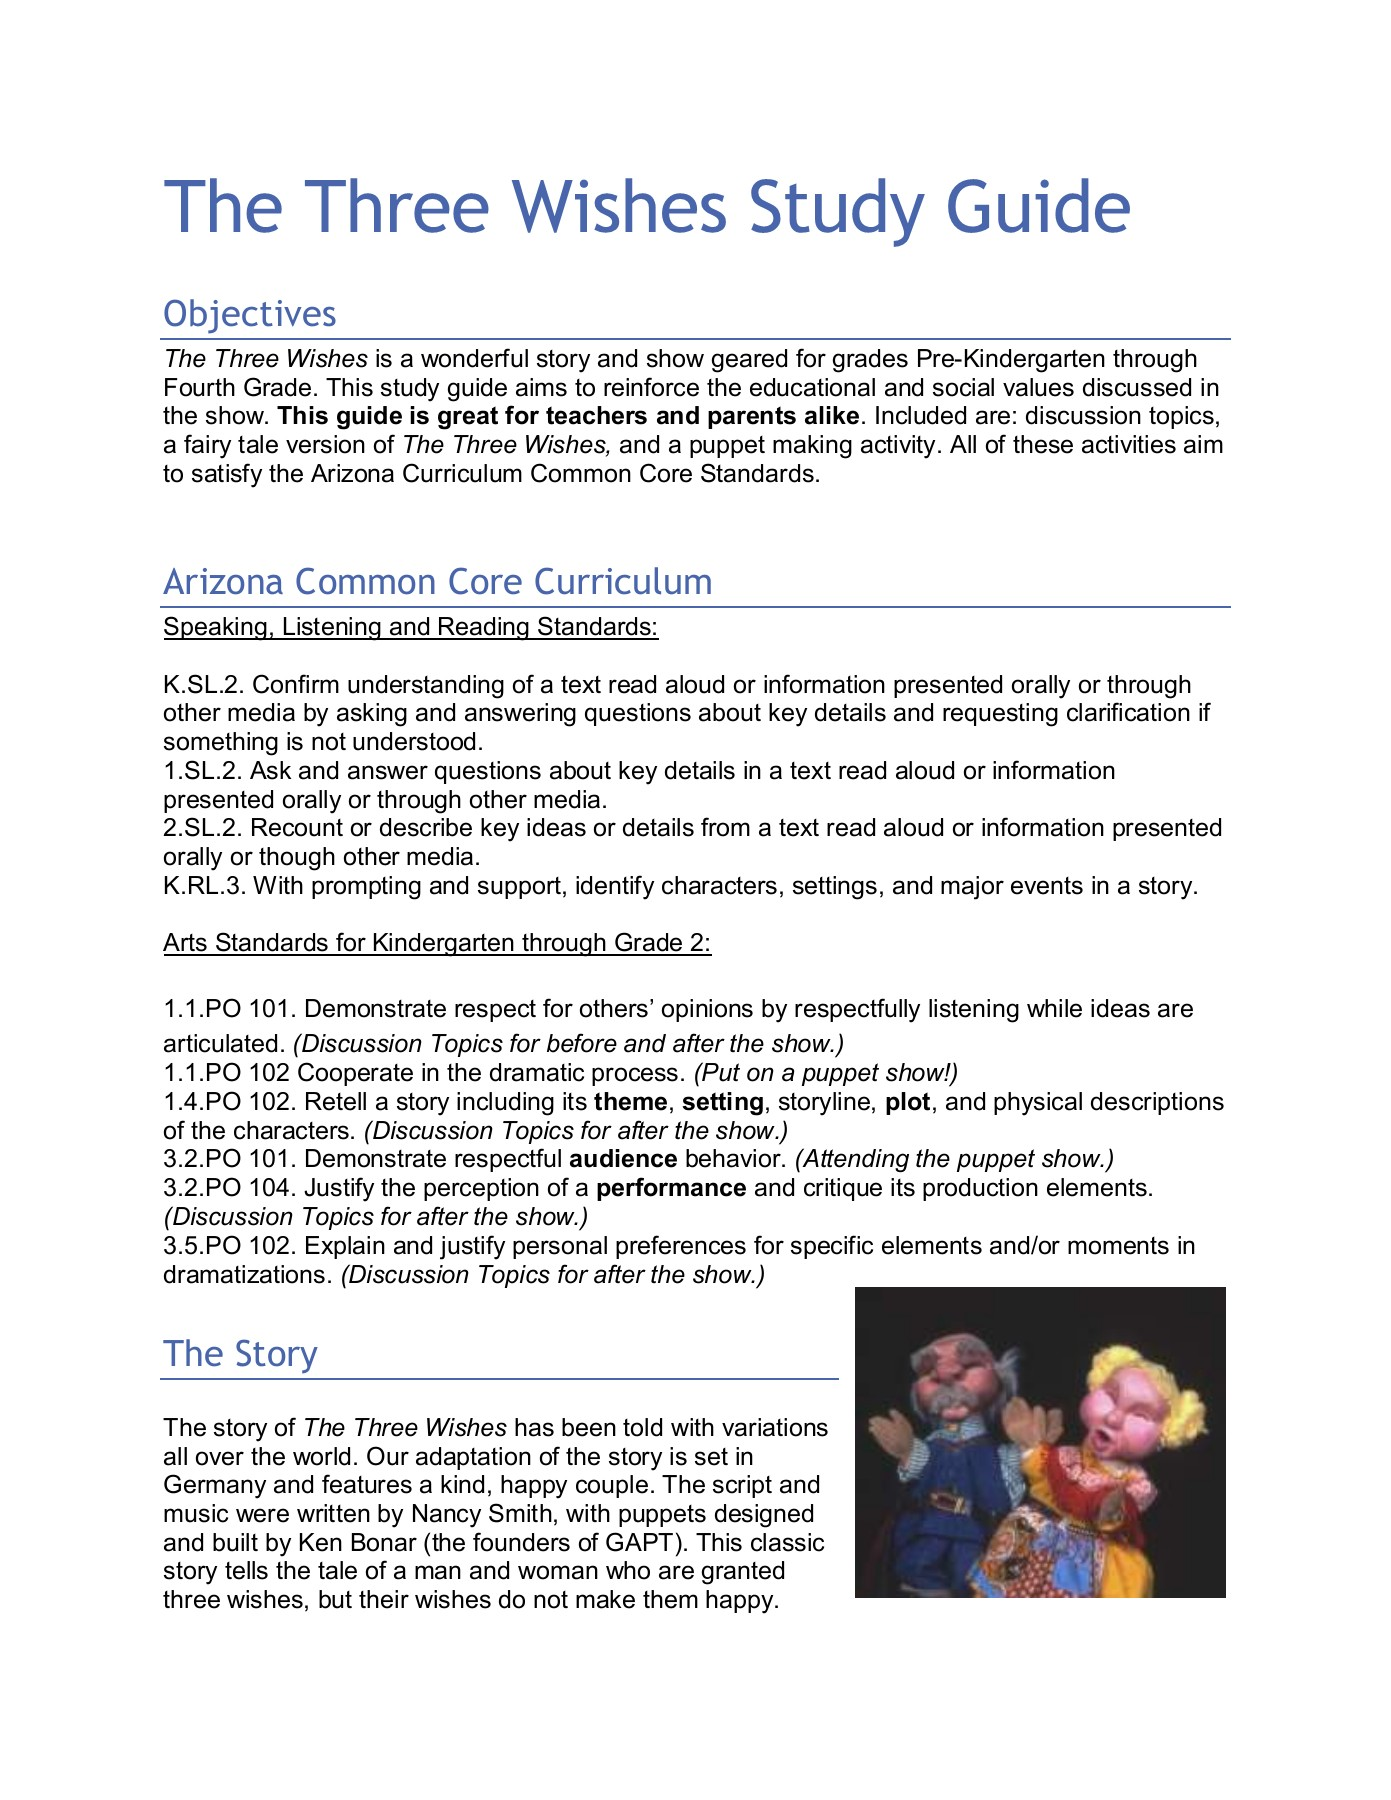 The Three Wishes Study Guide - Great Arizona Puppet Theater